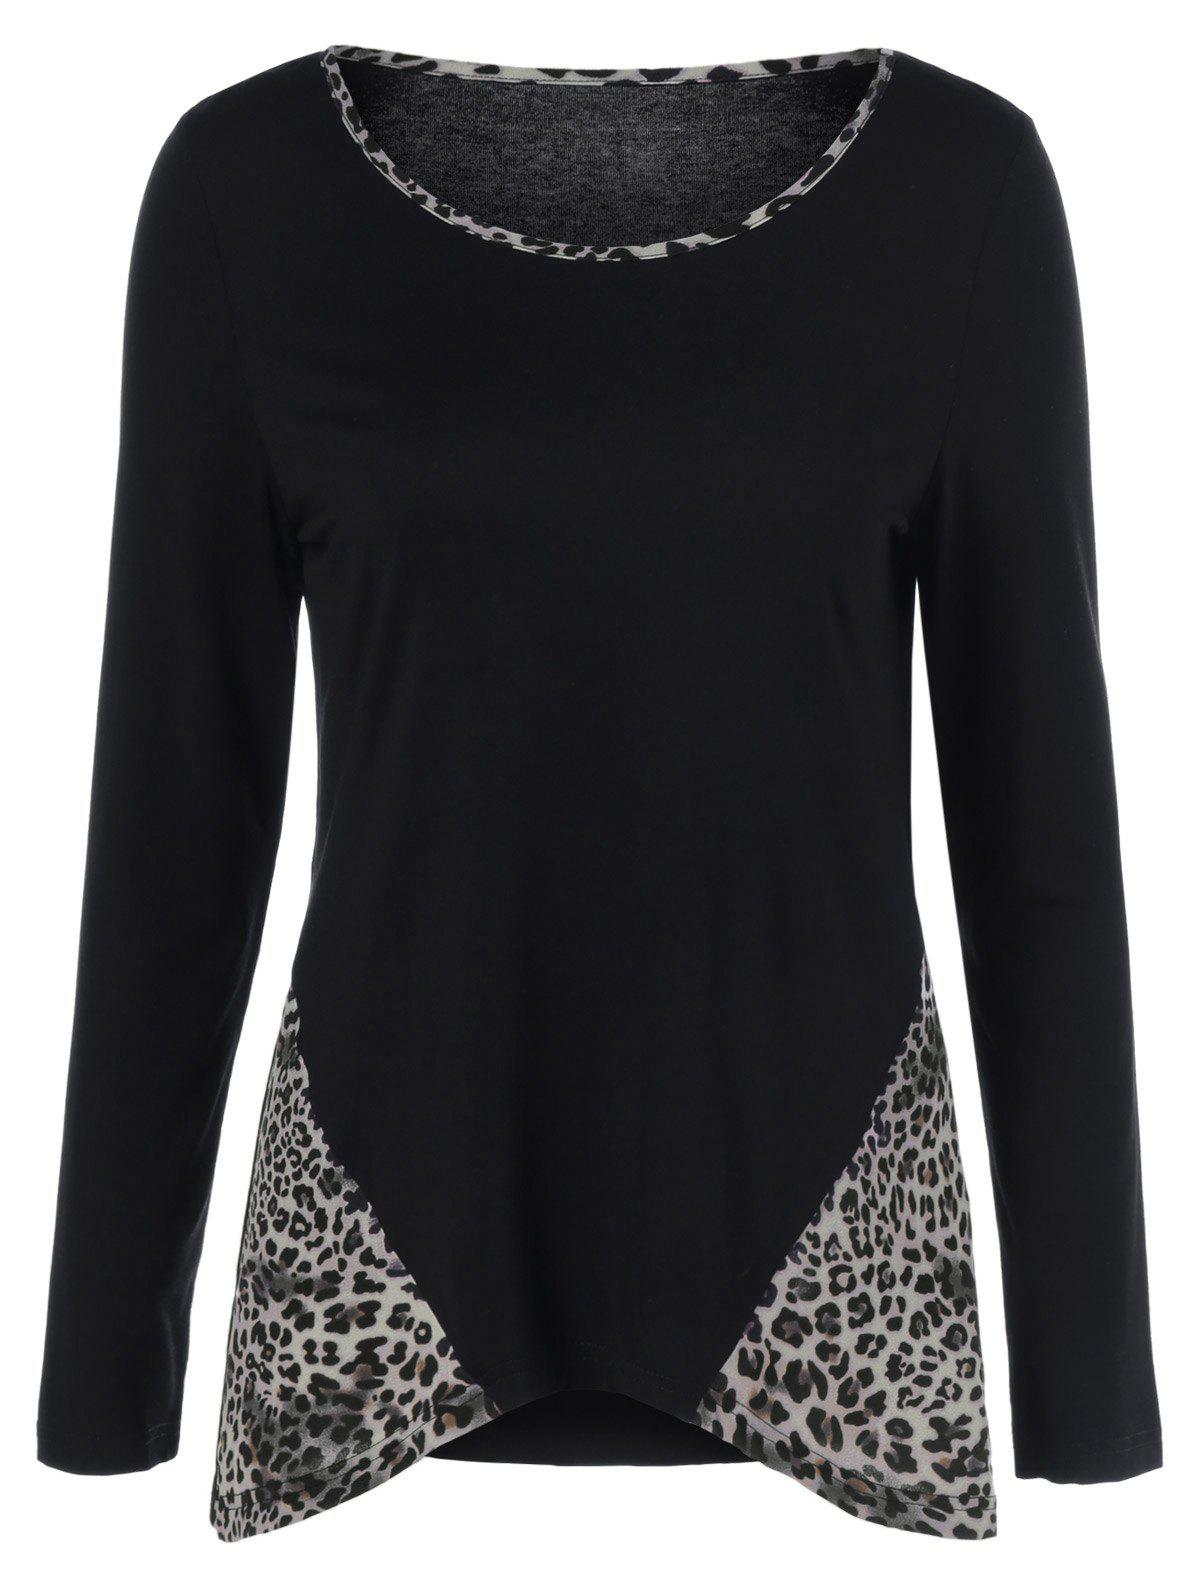 Leopard Trim Asymmetrical T-Shirt - BLACK M